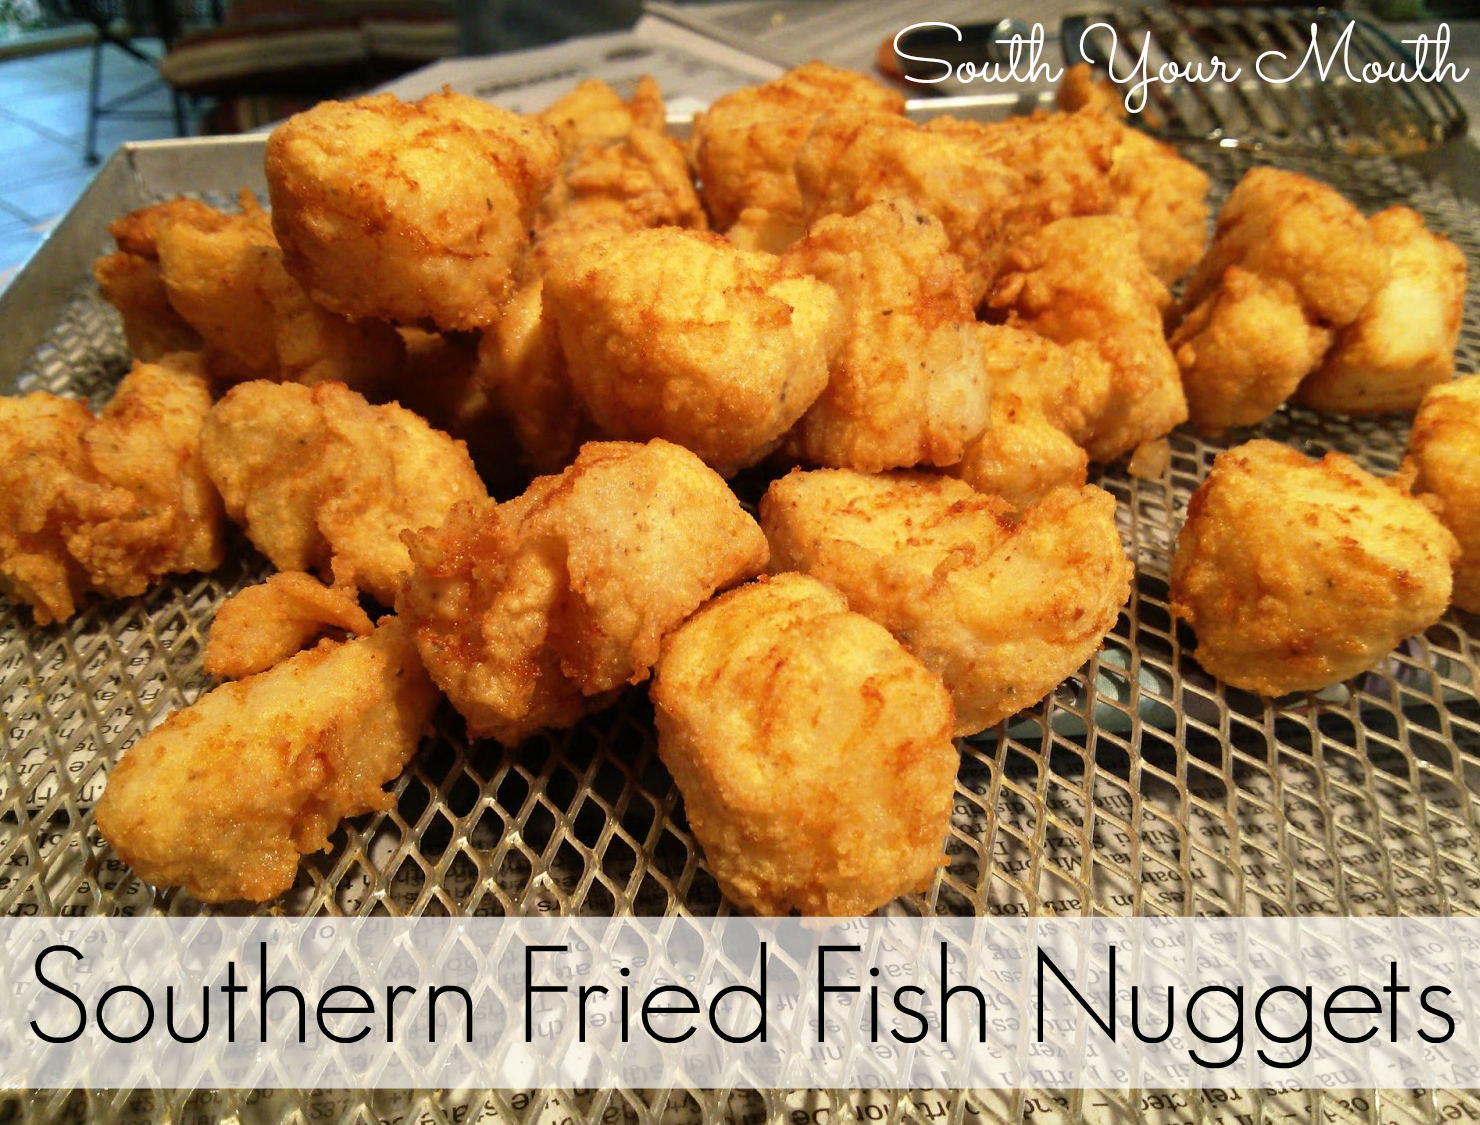 South Your Mouth Southern Fried Fish Nuggets